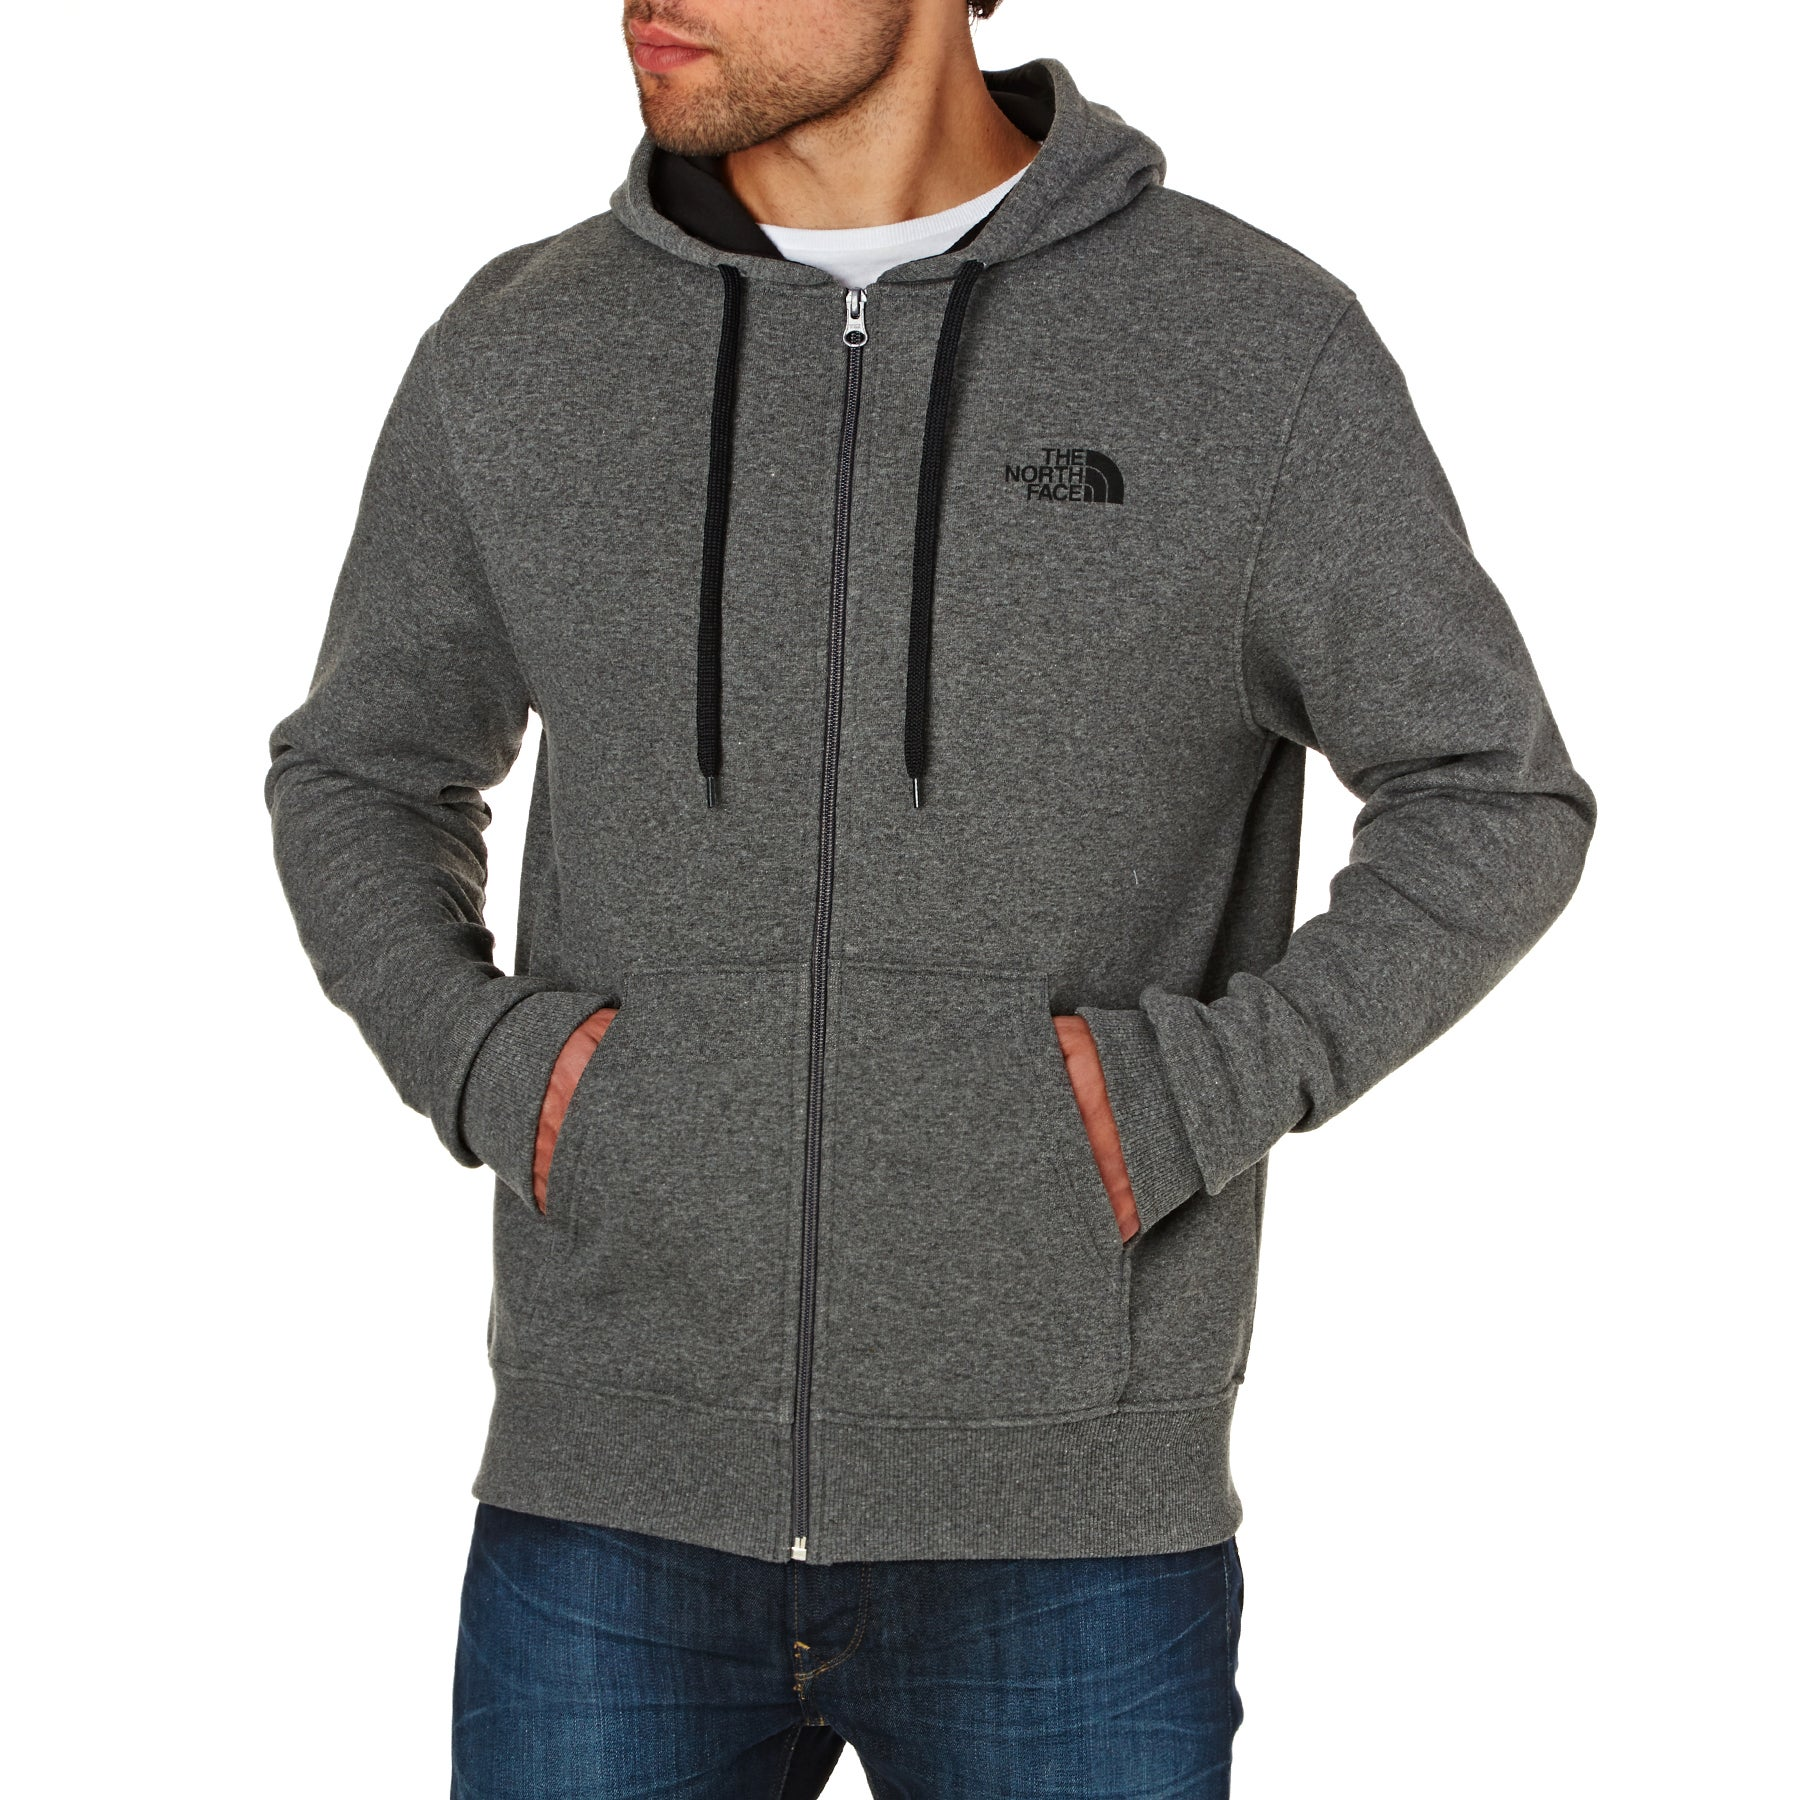 North Face Open Gate Zip Hoody - Grey